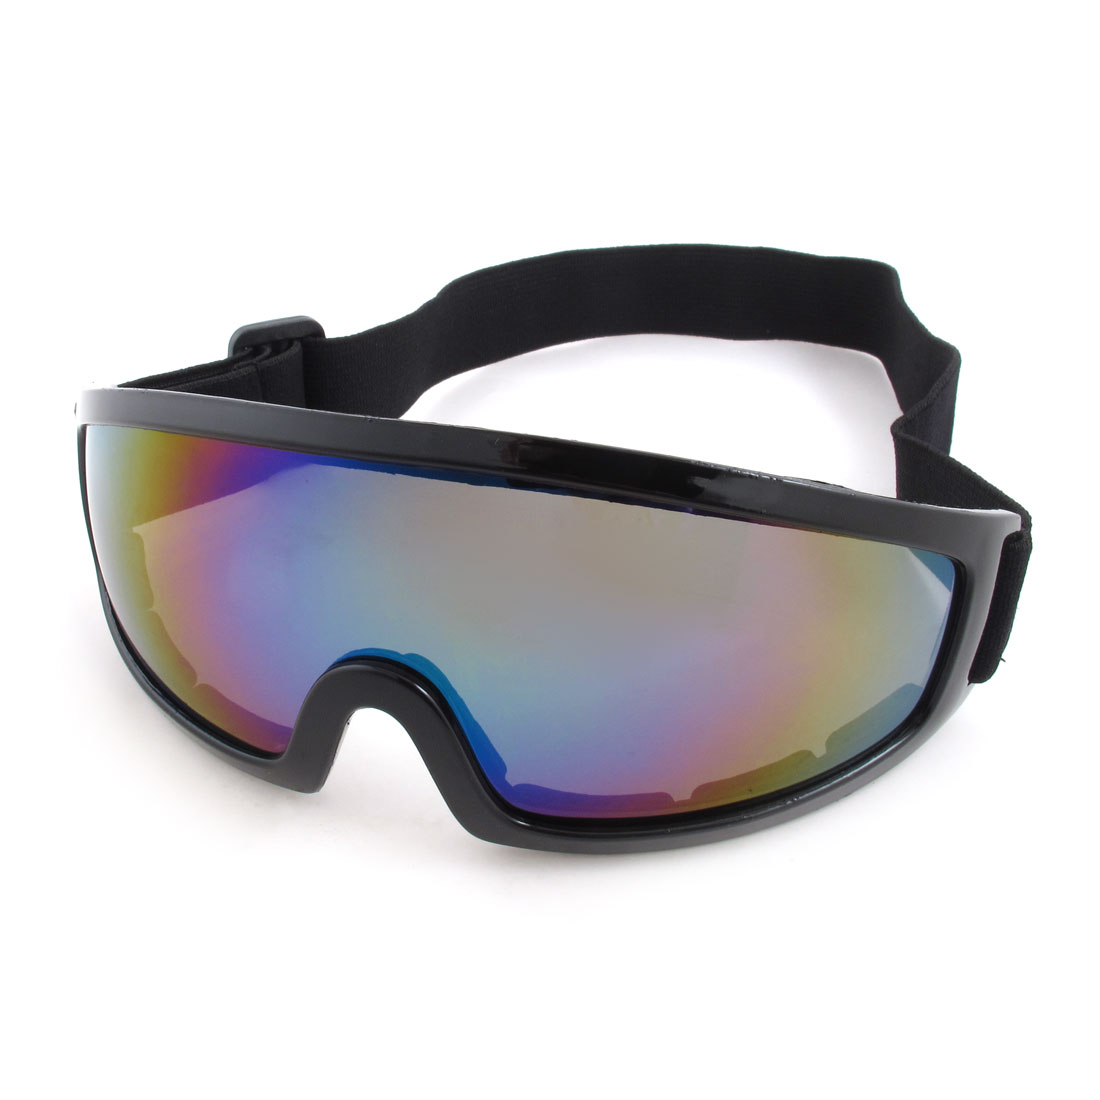 Motorcycle Motocross Cycling Racing Goggles Anti-Fog Uni Lens Glasses